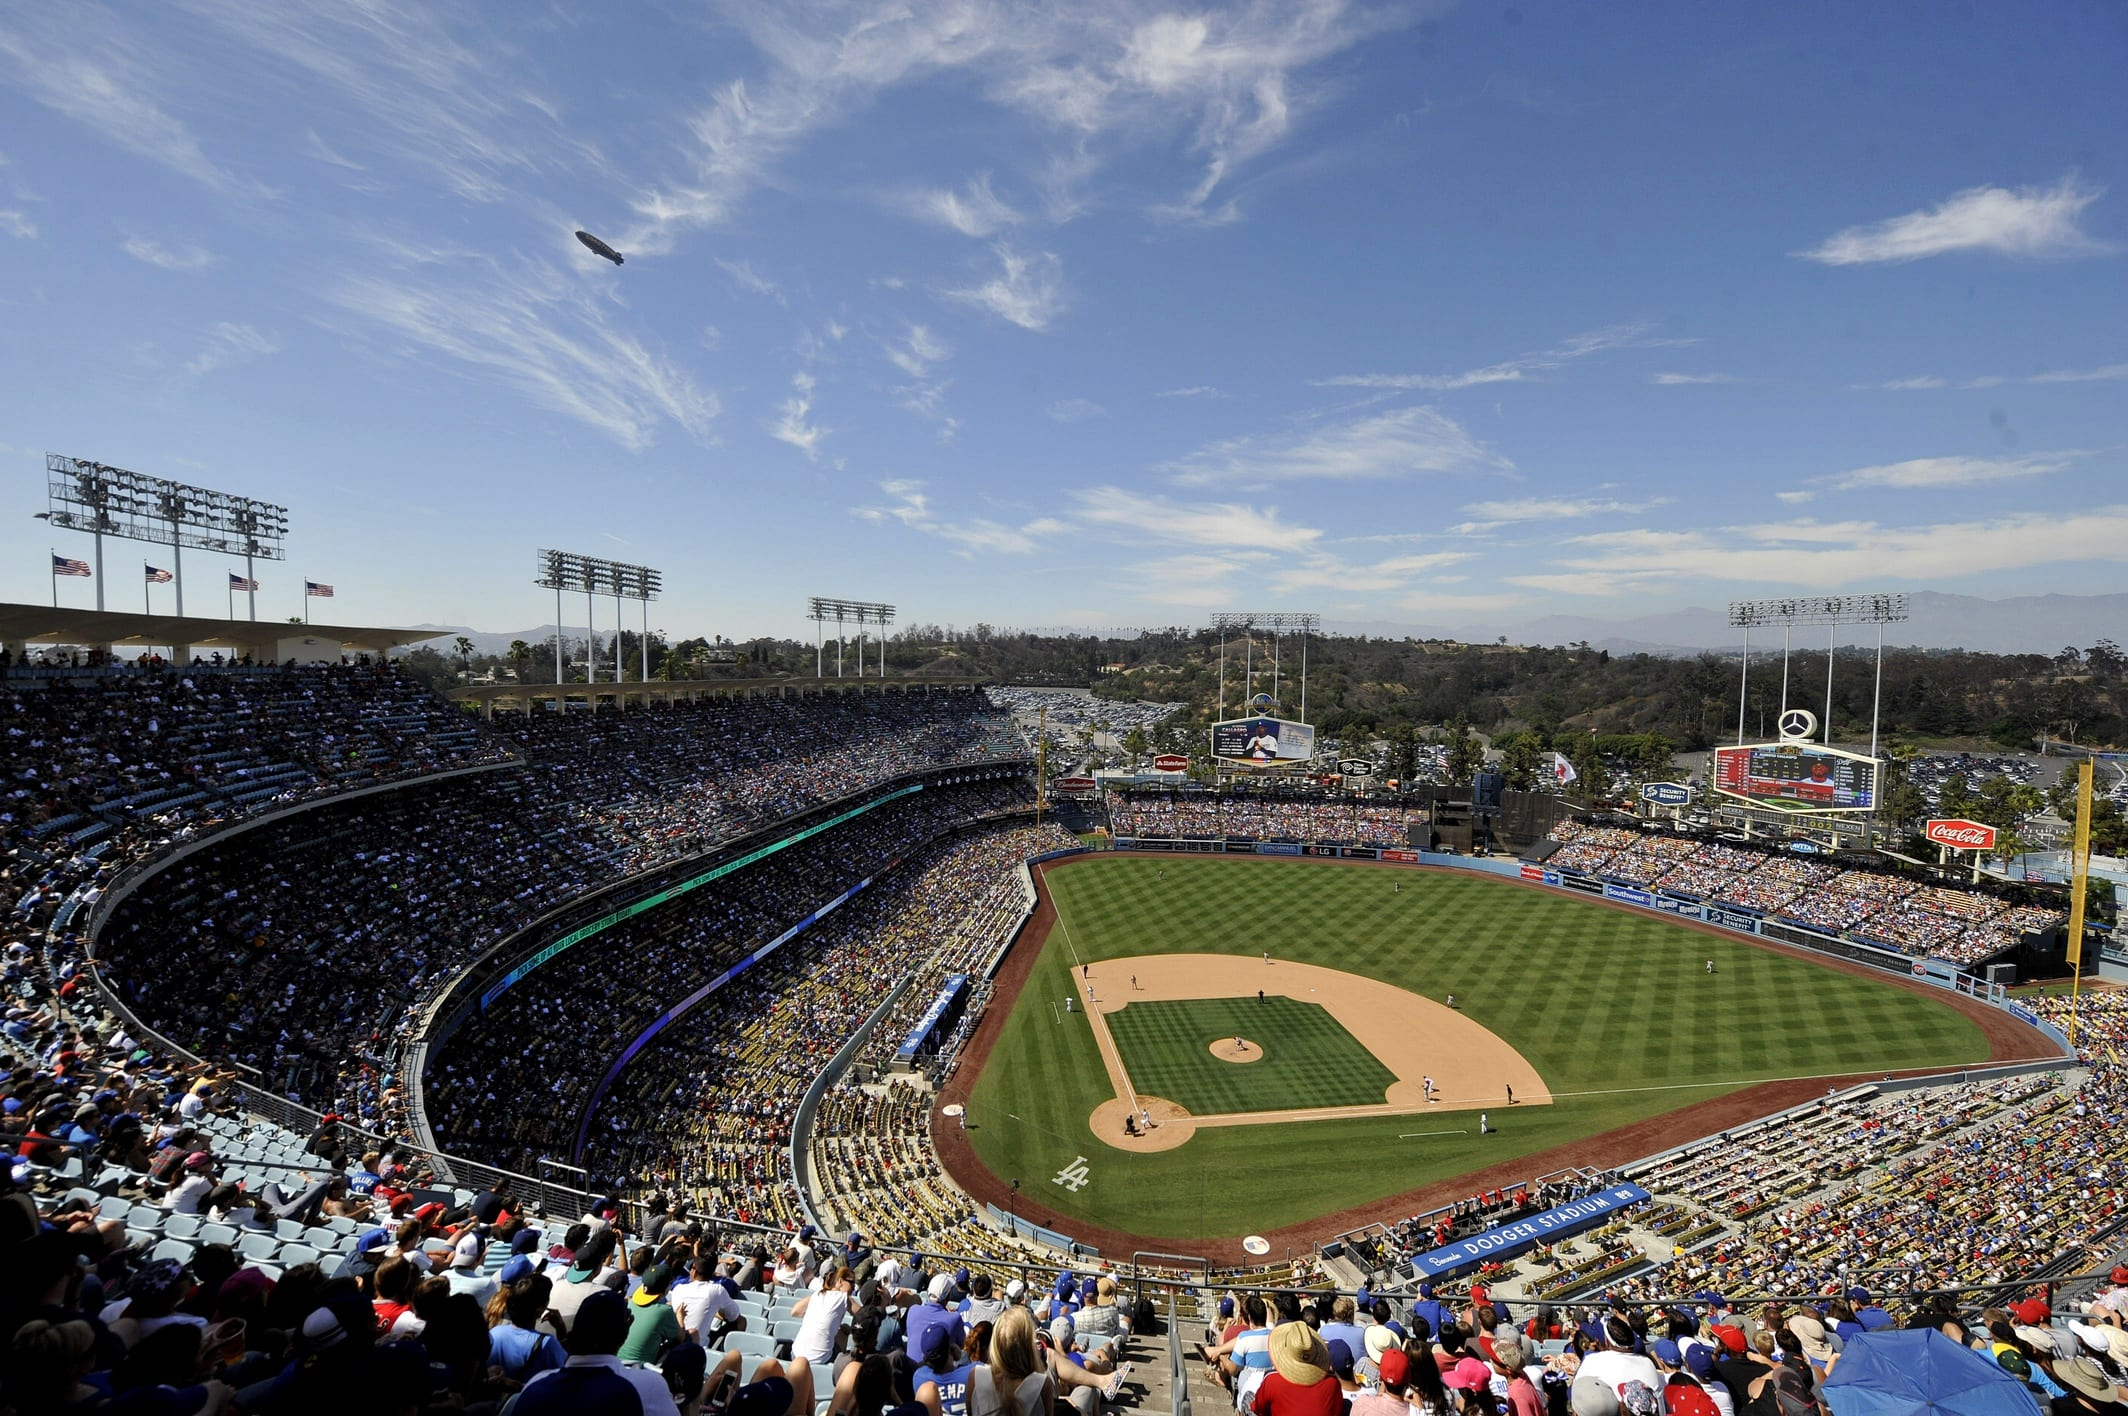 Dodgers-mets 2015 Nlds Games 1 & 2 Start Times Announced